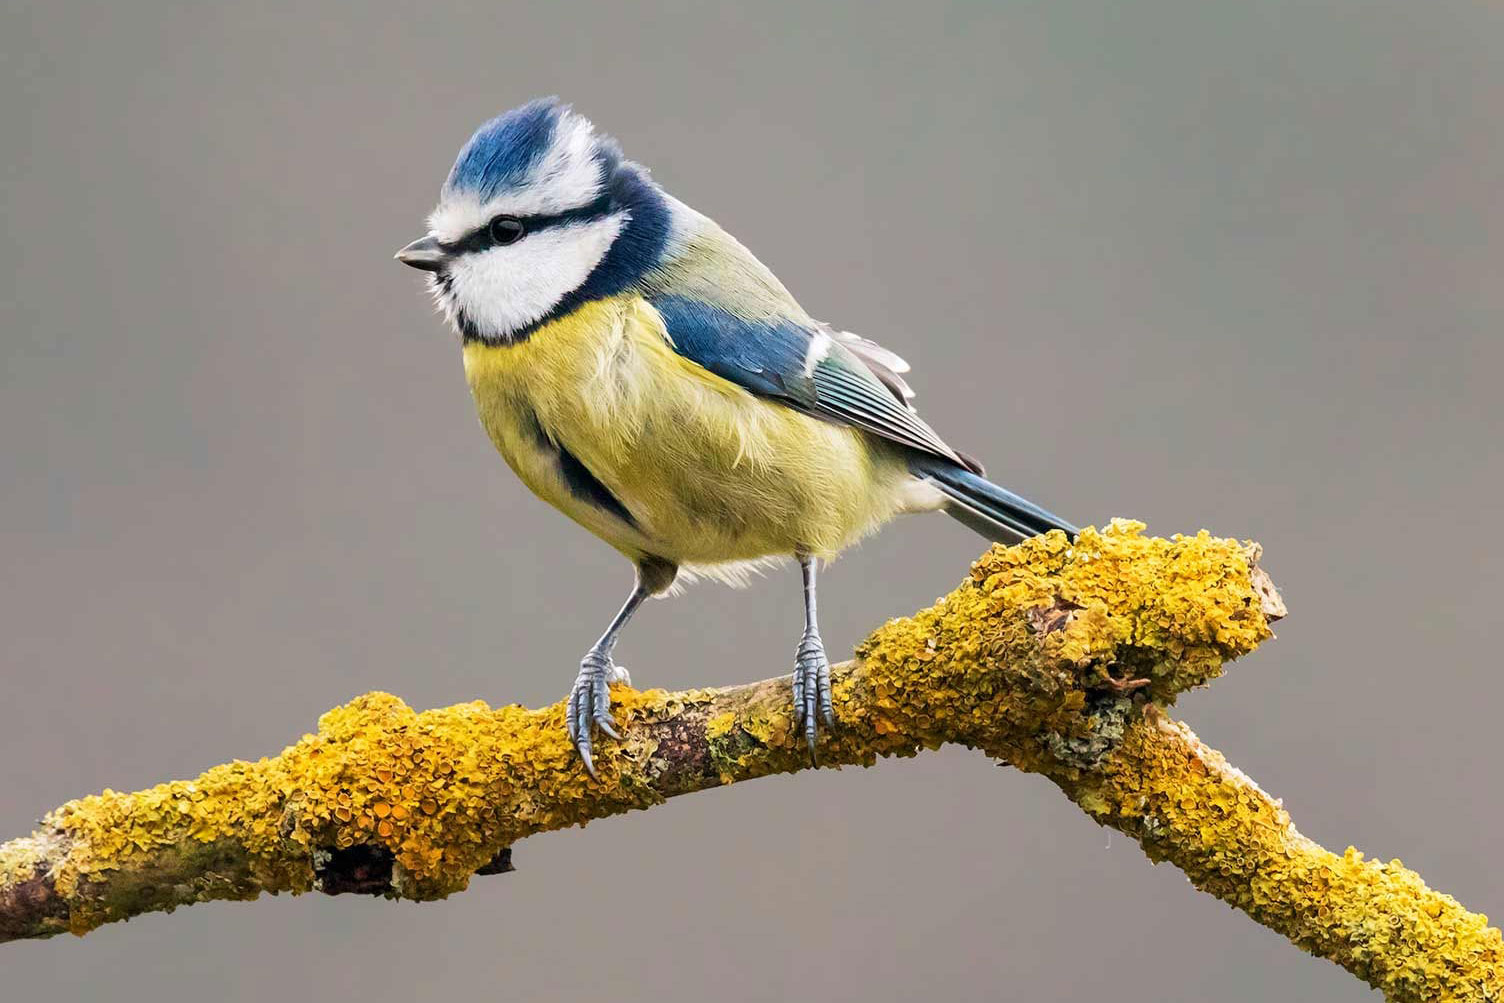 A seasonal guide to Bird watching in South Devon